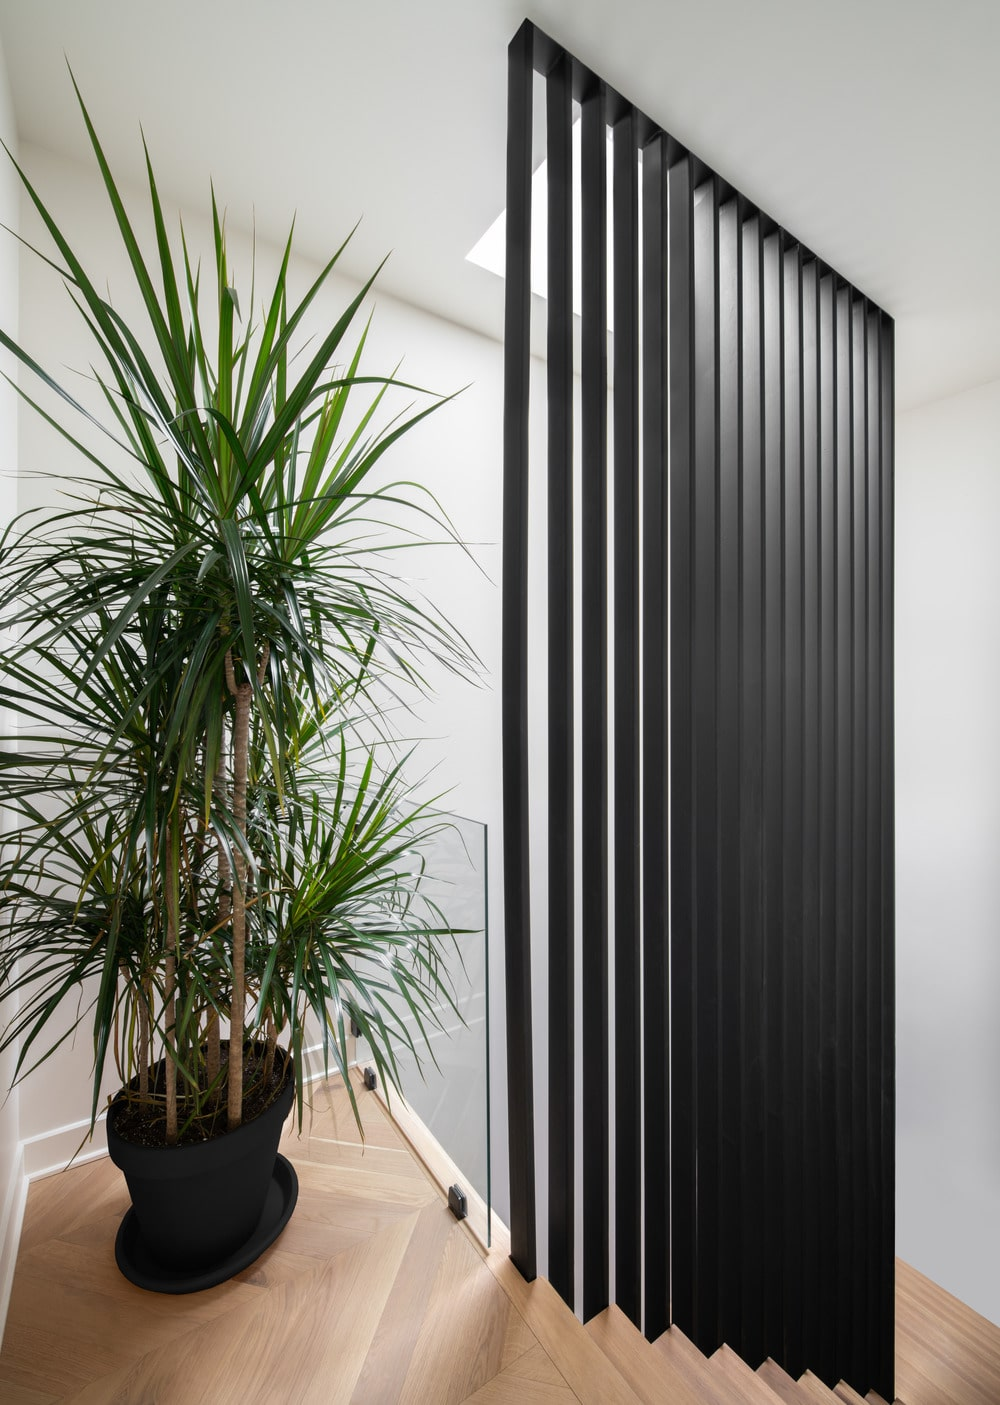 This is a close look at the landing with a black slatted panel on the side adorned with a large potted plant.